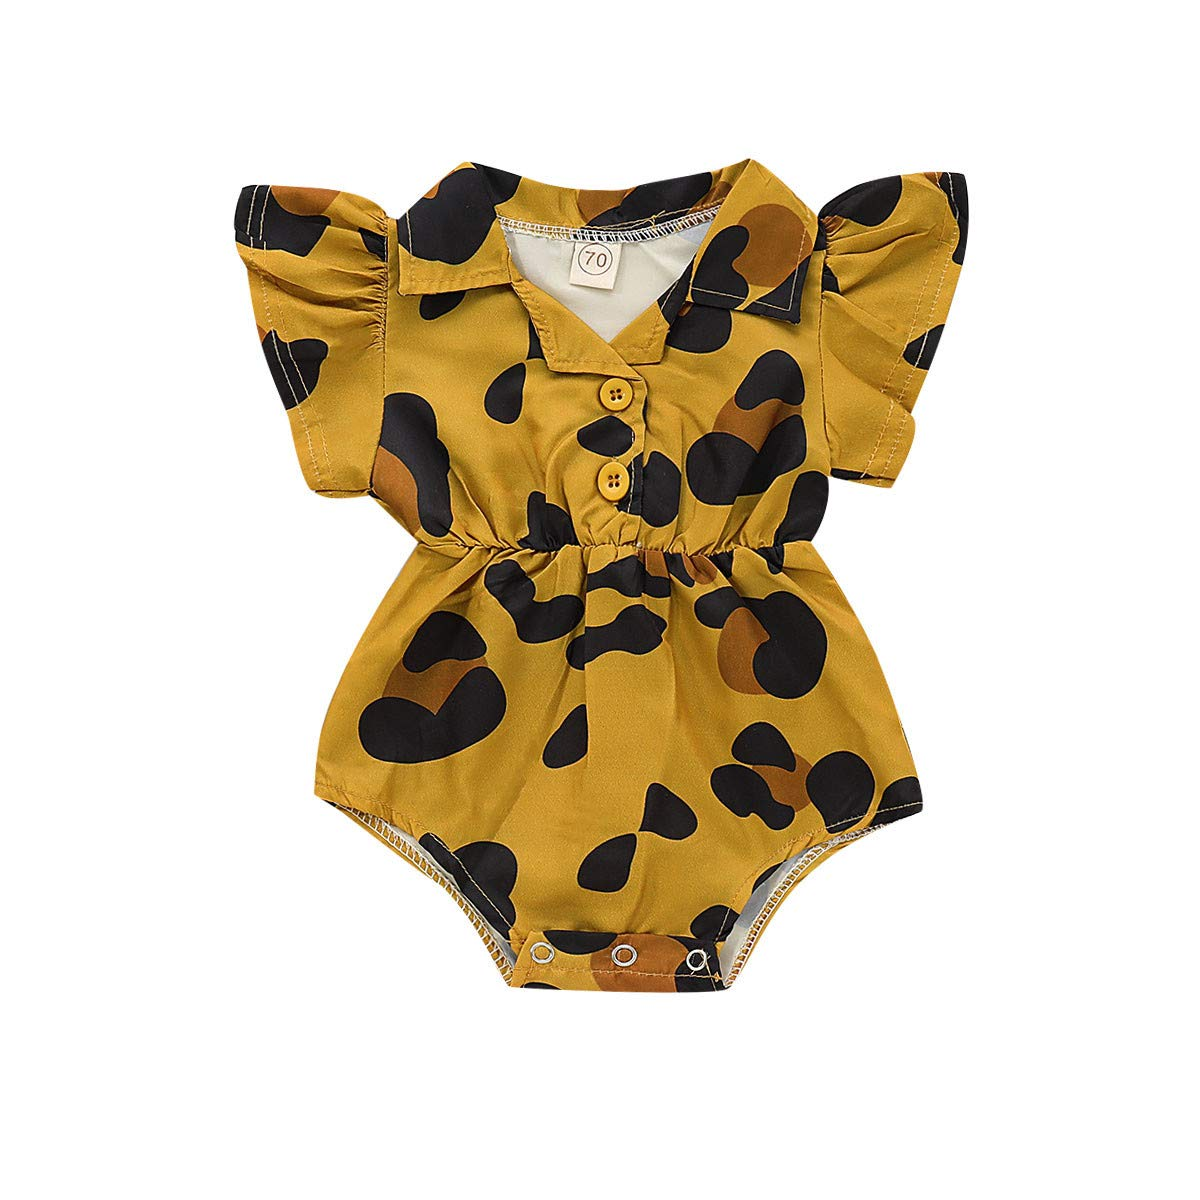 Toddler Infants Baby Leopard Print Fly Sleeveless Romper Bodysuit Cute Casual Button Collar Sleepwear Outfits Bodysuits (Yellow, 18-24 M)